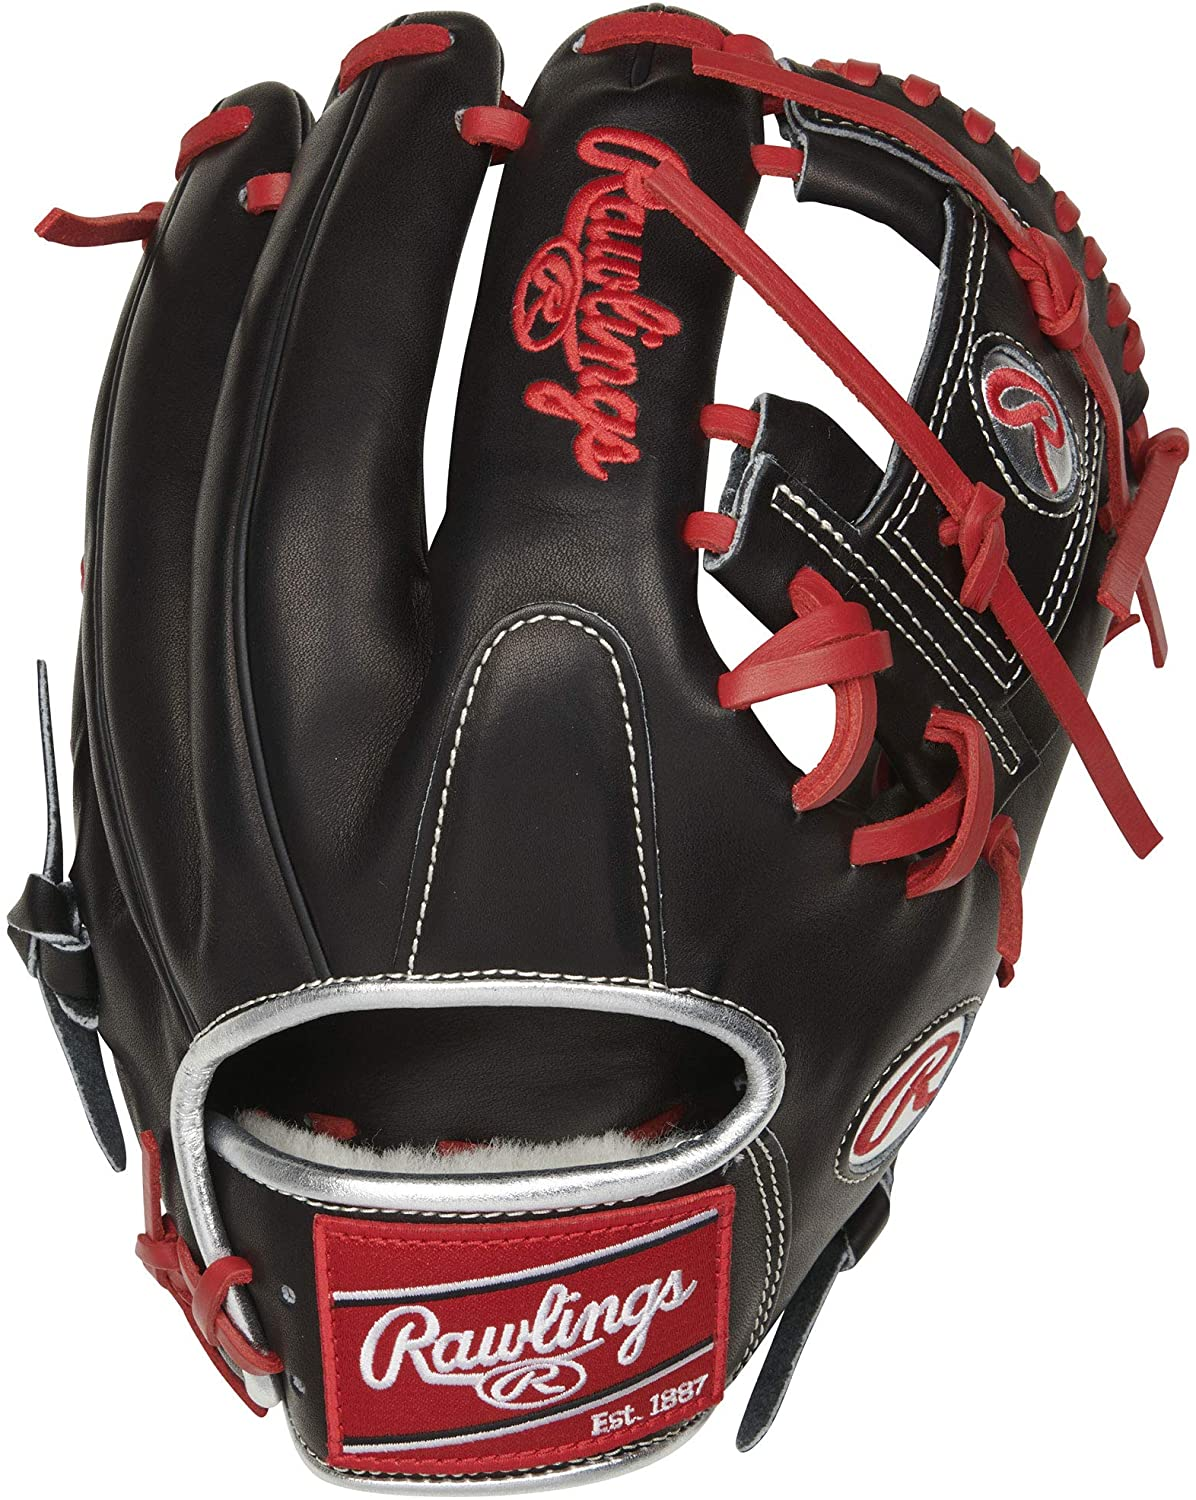 rawlings-pro-preferred-11-75-baseball-glove-f-lindor-right-hand-throw PROSFL12B-RightHandThrow Rawlings 083321701627 The 2021 Pro Preferred Francisco Lindor Glove was constructed from Rawlings